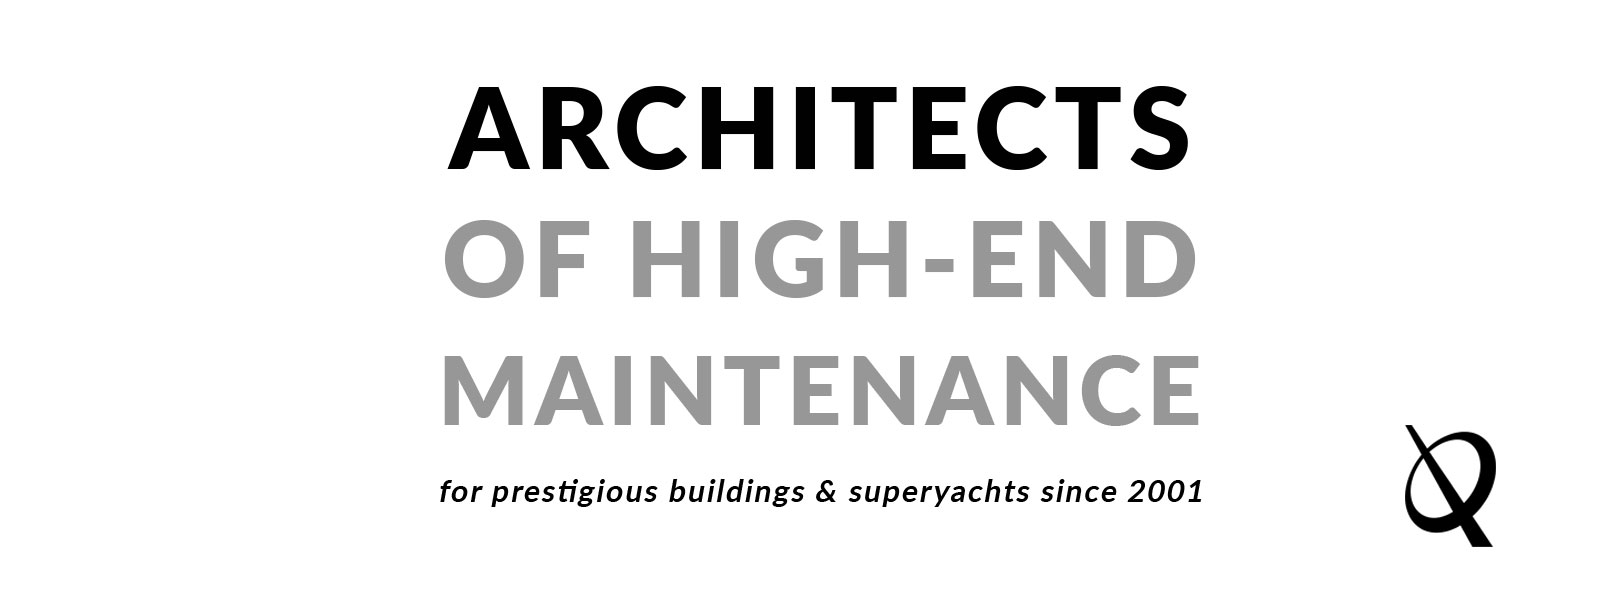 architects_of_high_end_maintenance_compressed_dec_18